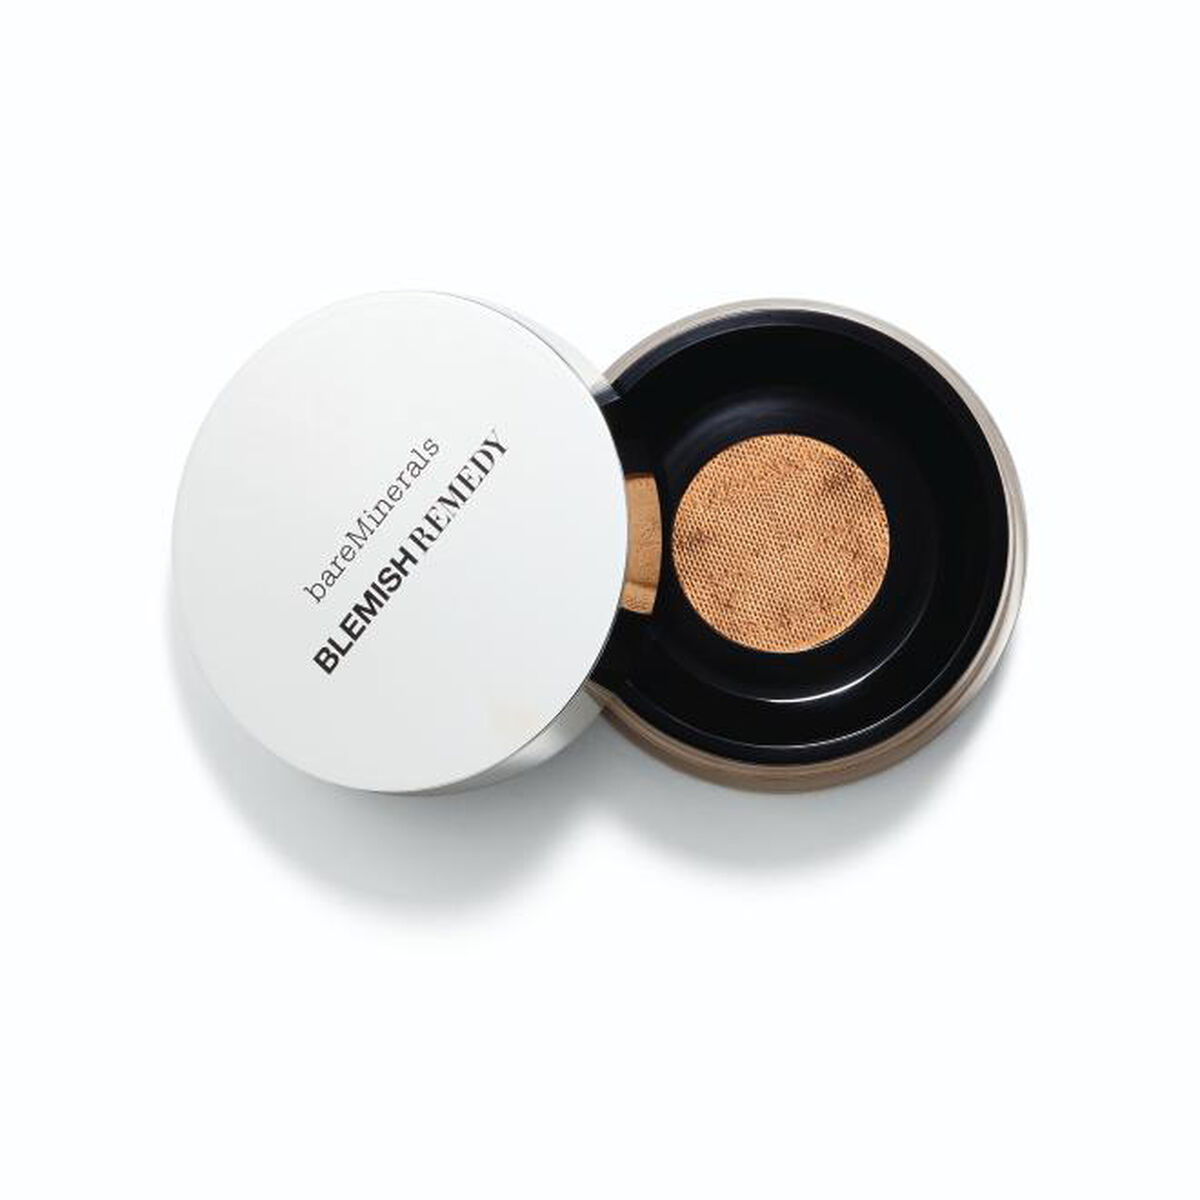 Blemish Remedy Foundation Clearly Almond